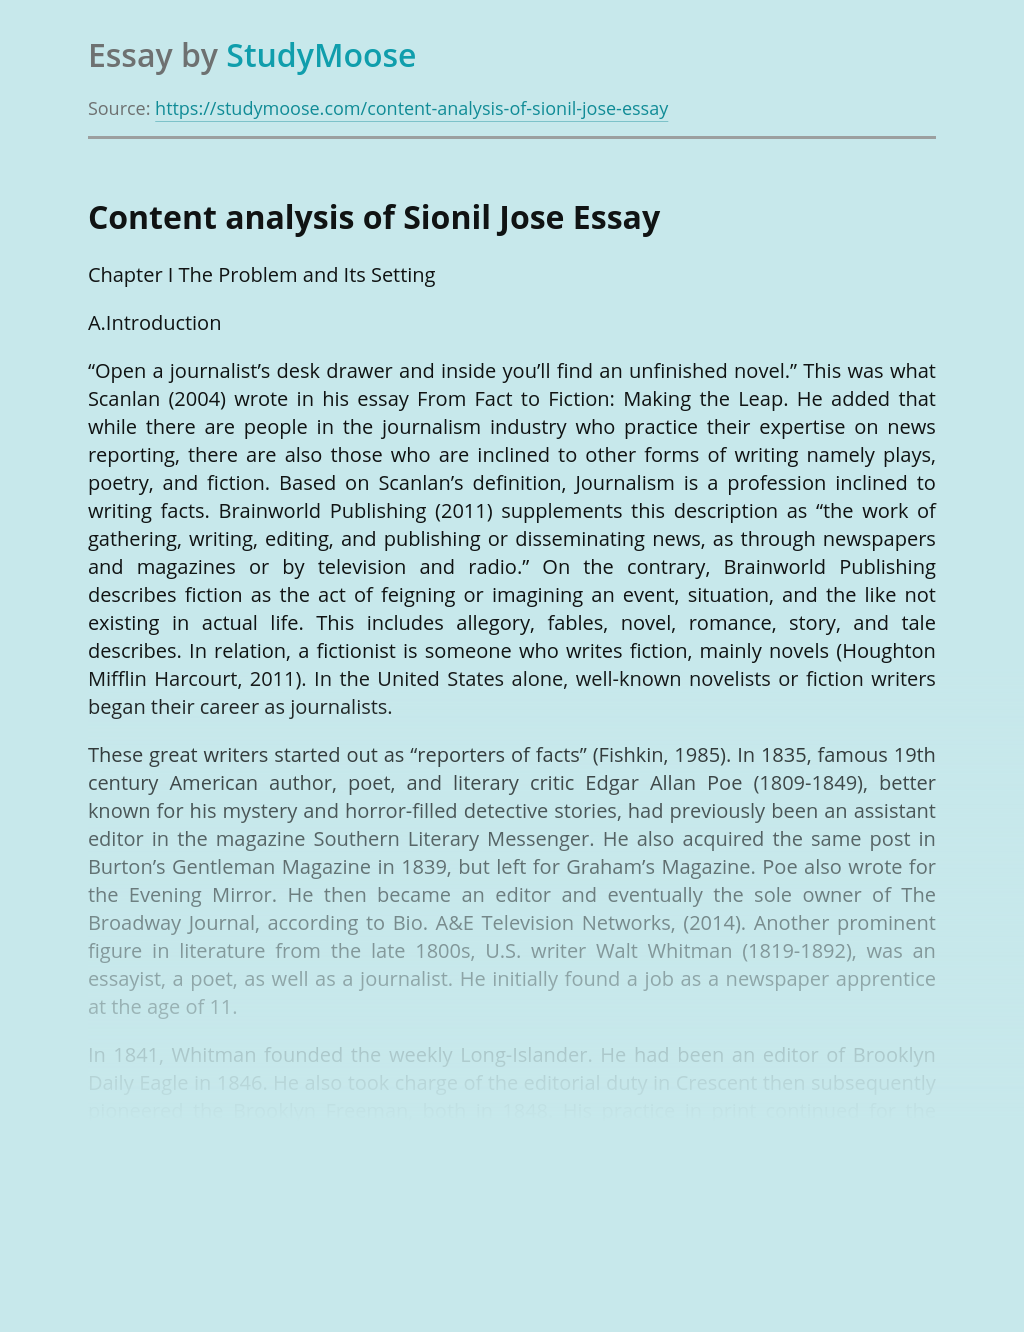 Content Analysis of Sionil Jose Novel